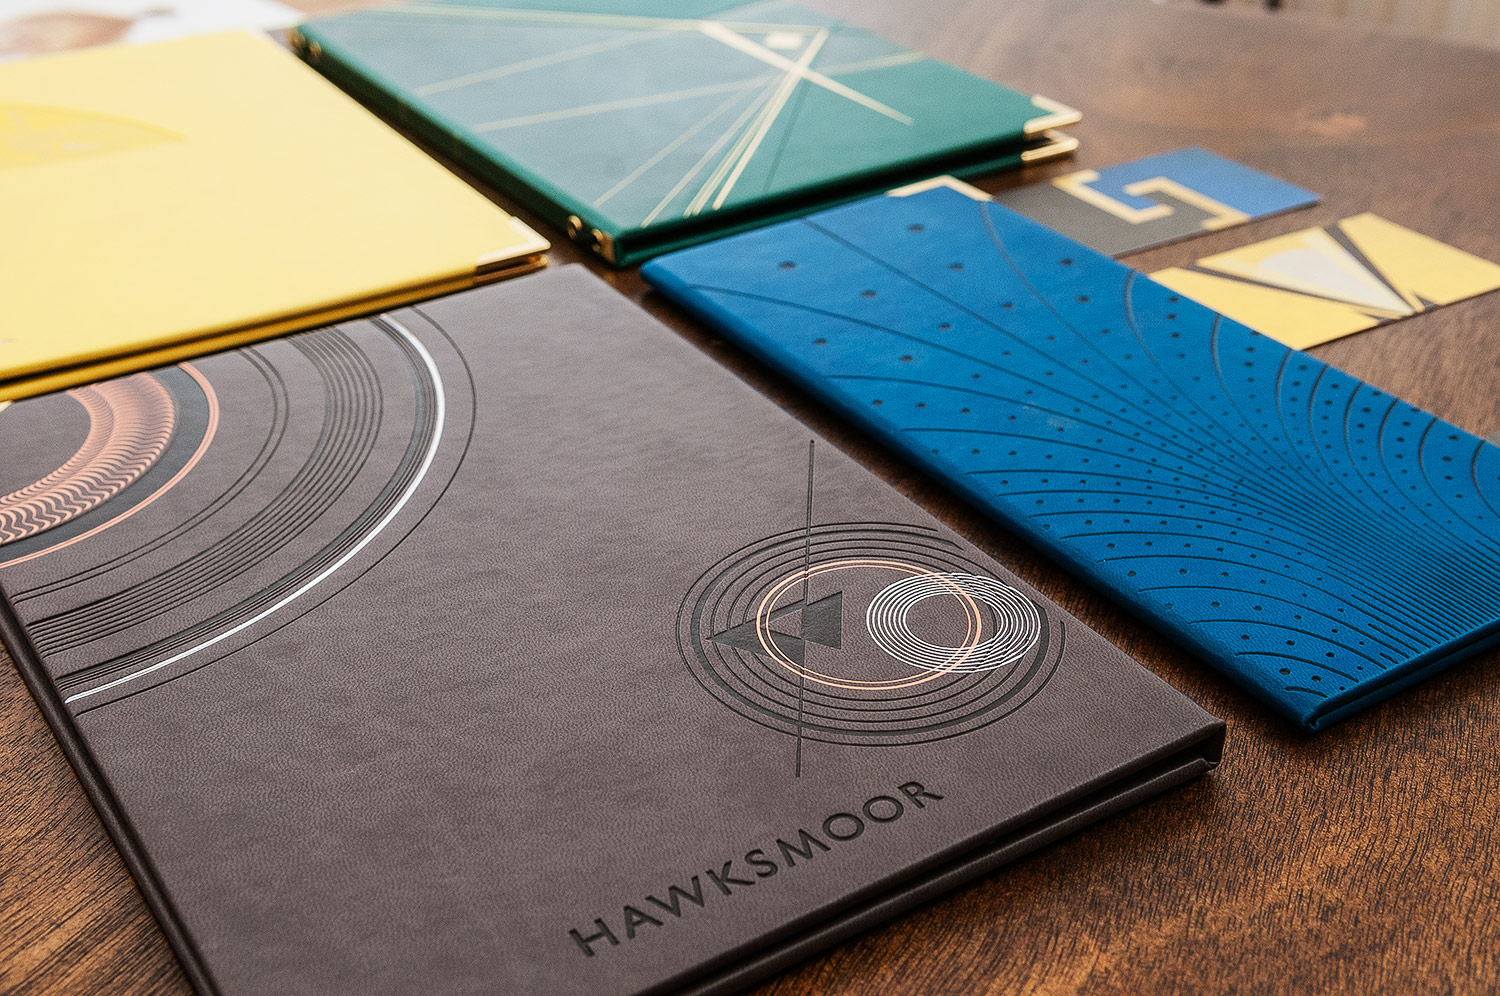 Close-up showing several art deco menu covers in yellow, blue, brown and green, with deboss and foil details, on a dark wood background, for Hawksmoor Air Street, designed by SAINT Design.